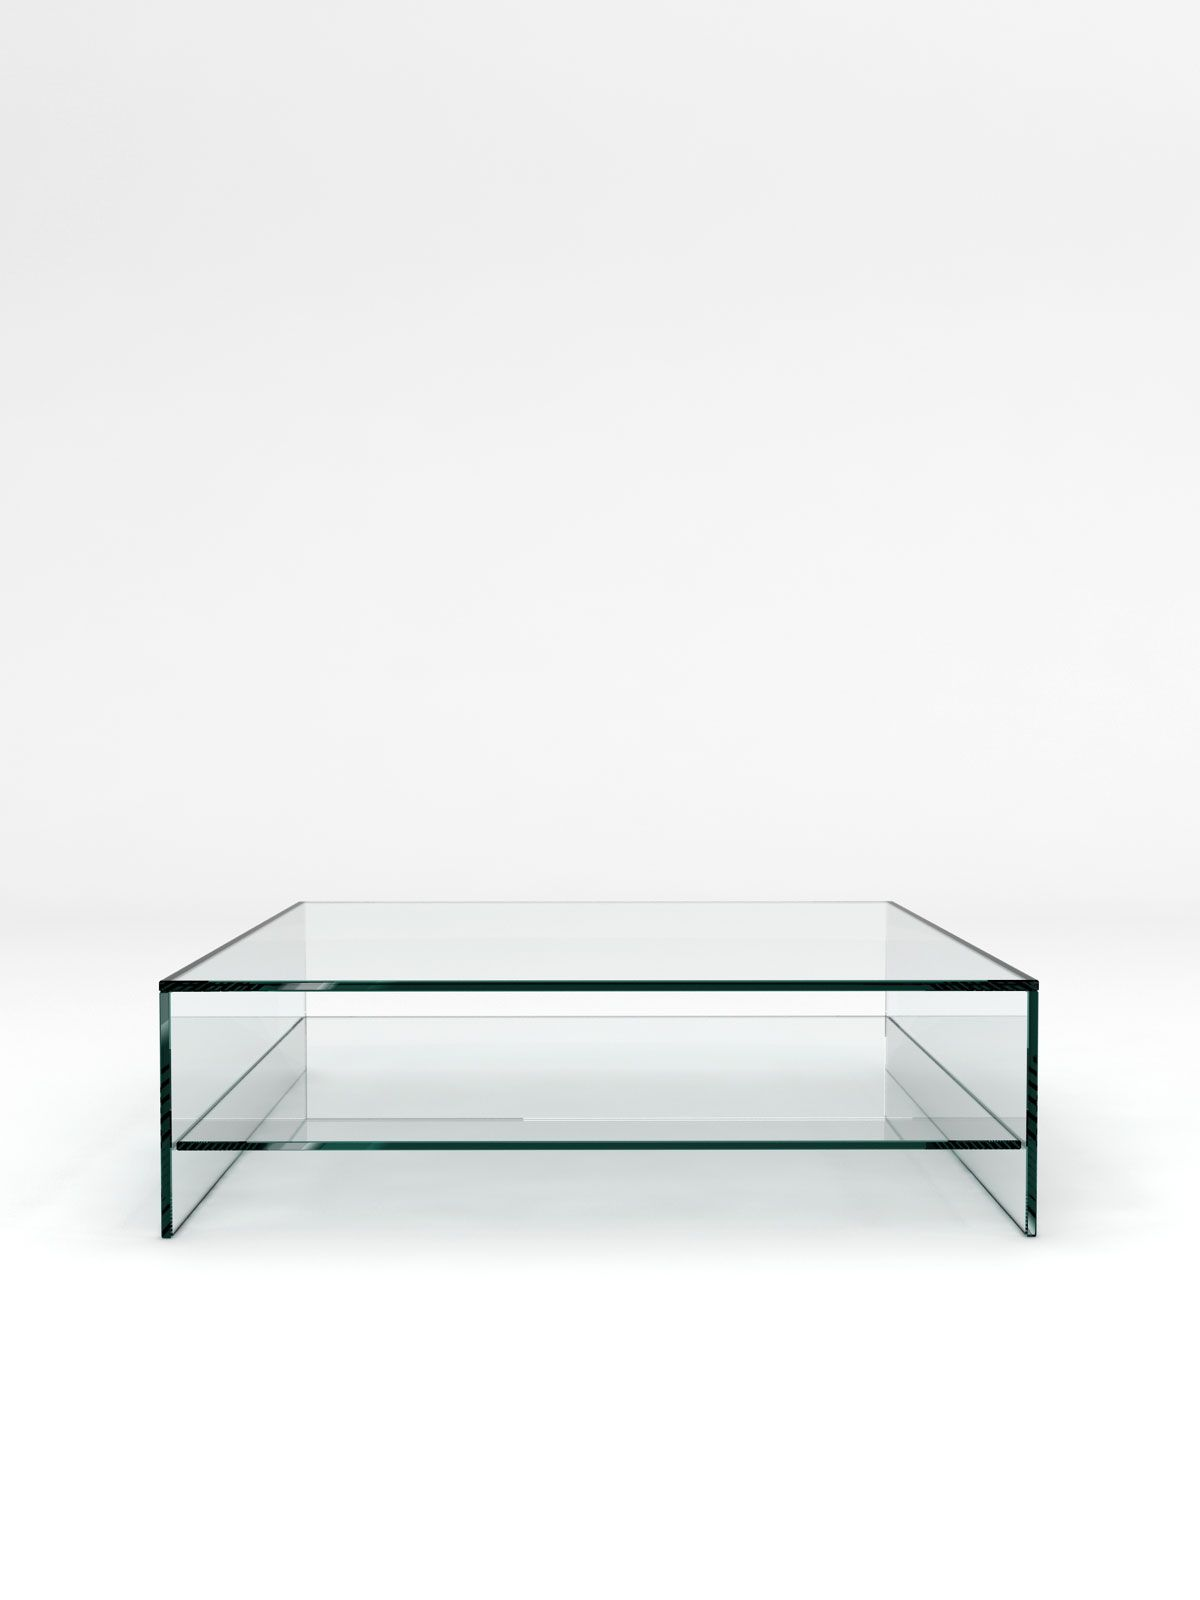 Rectangular Crystal Coffee Table With Shelf Coffee Table With Shelf Coffee Table Contemporary Coffee Table [ 1600 x 1200 Pixel ]